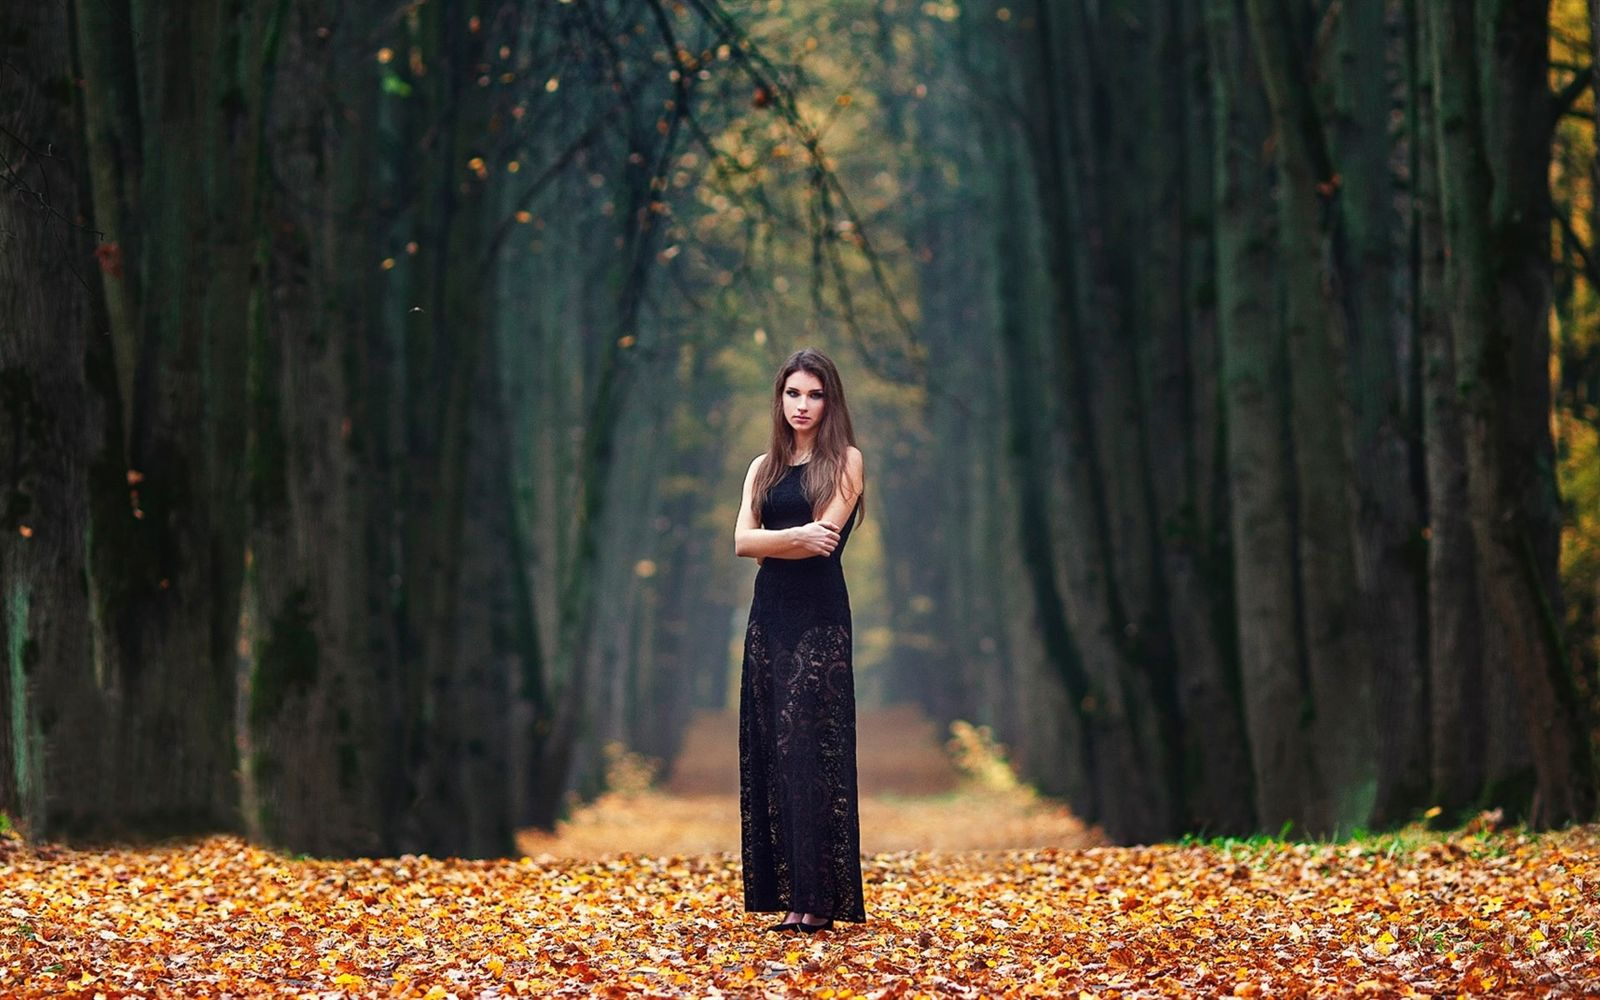 Nature Woman Girl Model Beautiful Young Outdoors Forest - Beautiful Nature With Girl , HD Wallpaper & Backgrounds